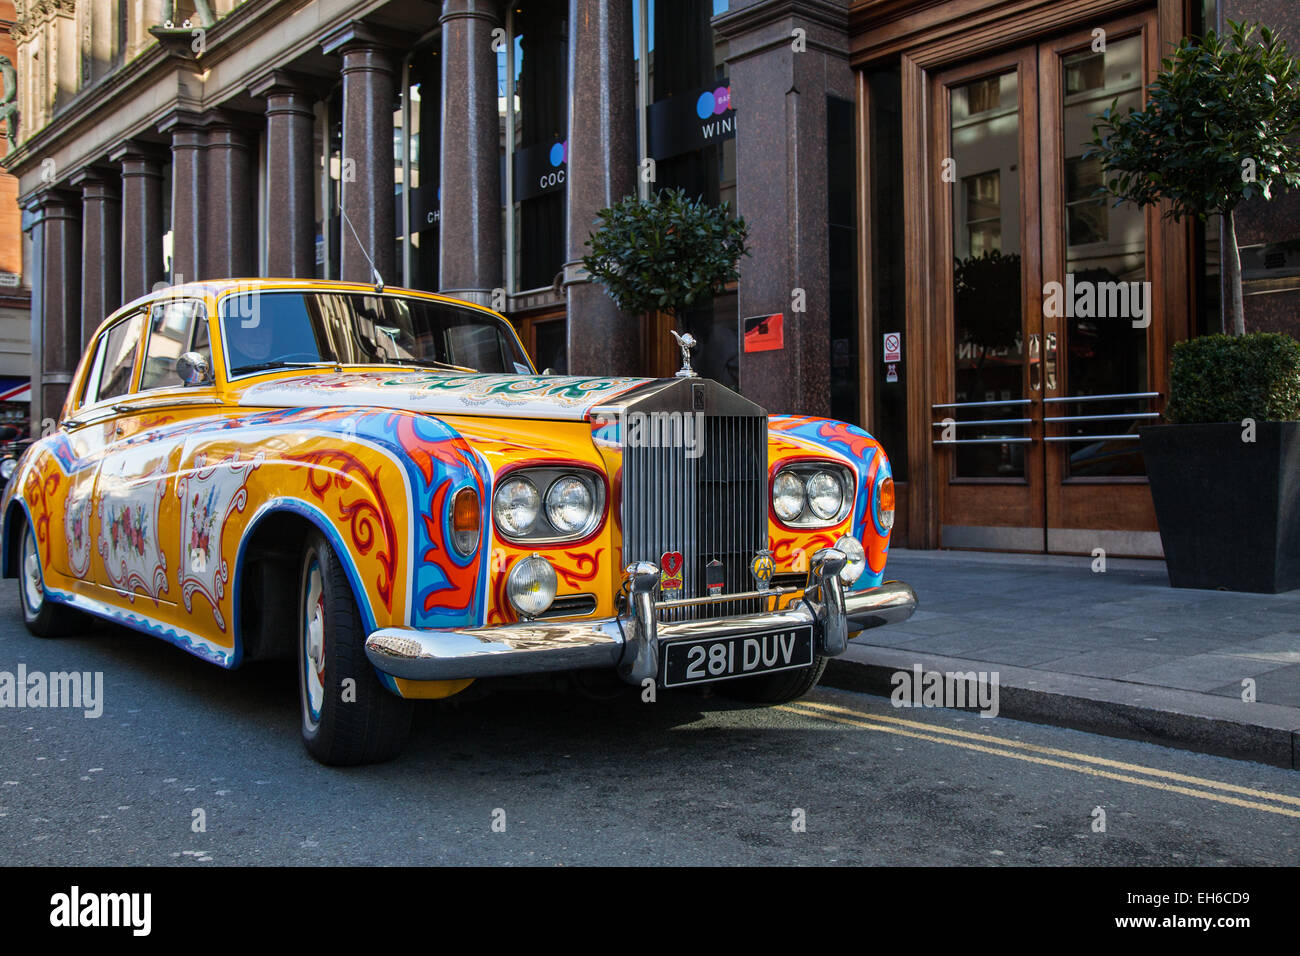 'The Beatles' John Lennon replica Psychedelic Rolls_A Hard Day's Night Hotel, located on North John Street, - Stock Image